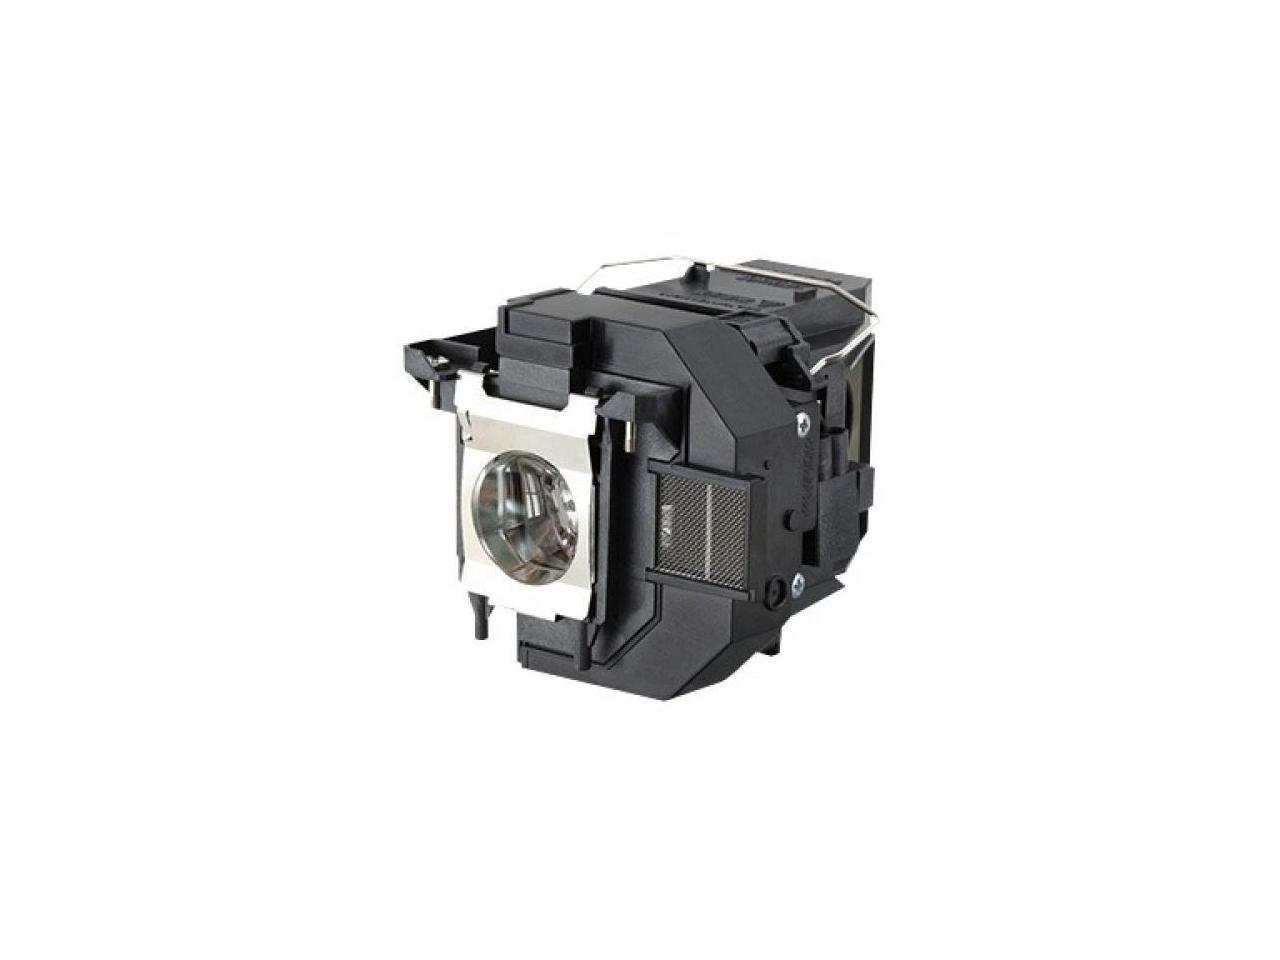 Rembam ELPLP96 V13H010L96 Projector Replacement Compatible Lamp with Housing for EPSON Powerlite Home Cinema 2100 2150 1060 660 760hd VS250 VS350 VS355 EX9210 EX9220 EX3260 EX5260 EX7260